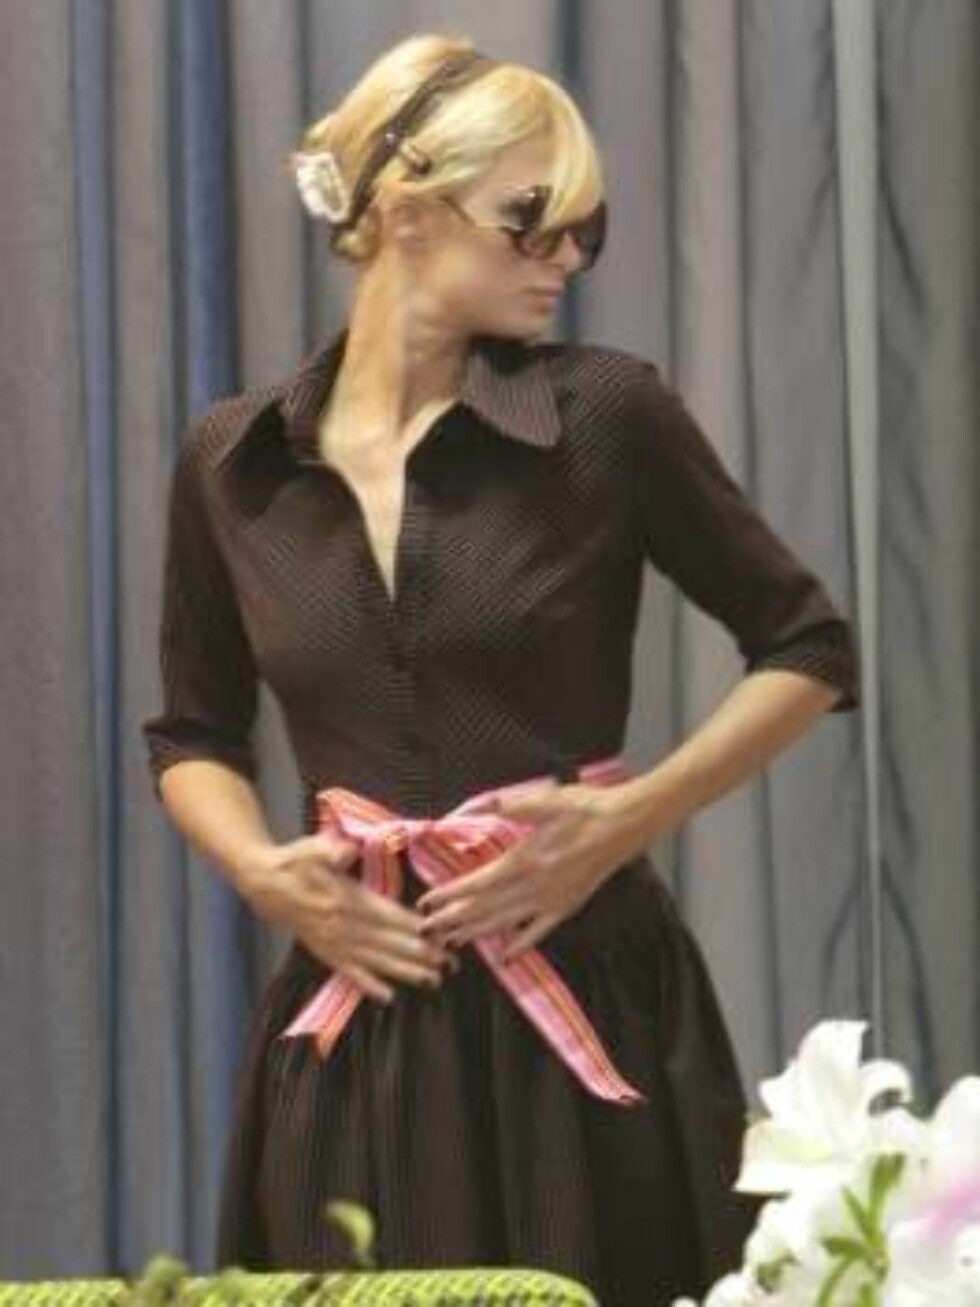 Los Angeles 2006-09-21  Heiress turned actress and singer makes a little shopping spree in Los Angeles, CA, USA on September 20, 2006. After trying in some different outfits and pieces of jewellery, Paris left the store without anything... Stuck on her ce Foto: STELLA PICTURES